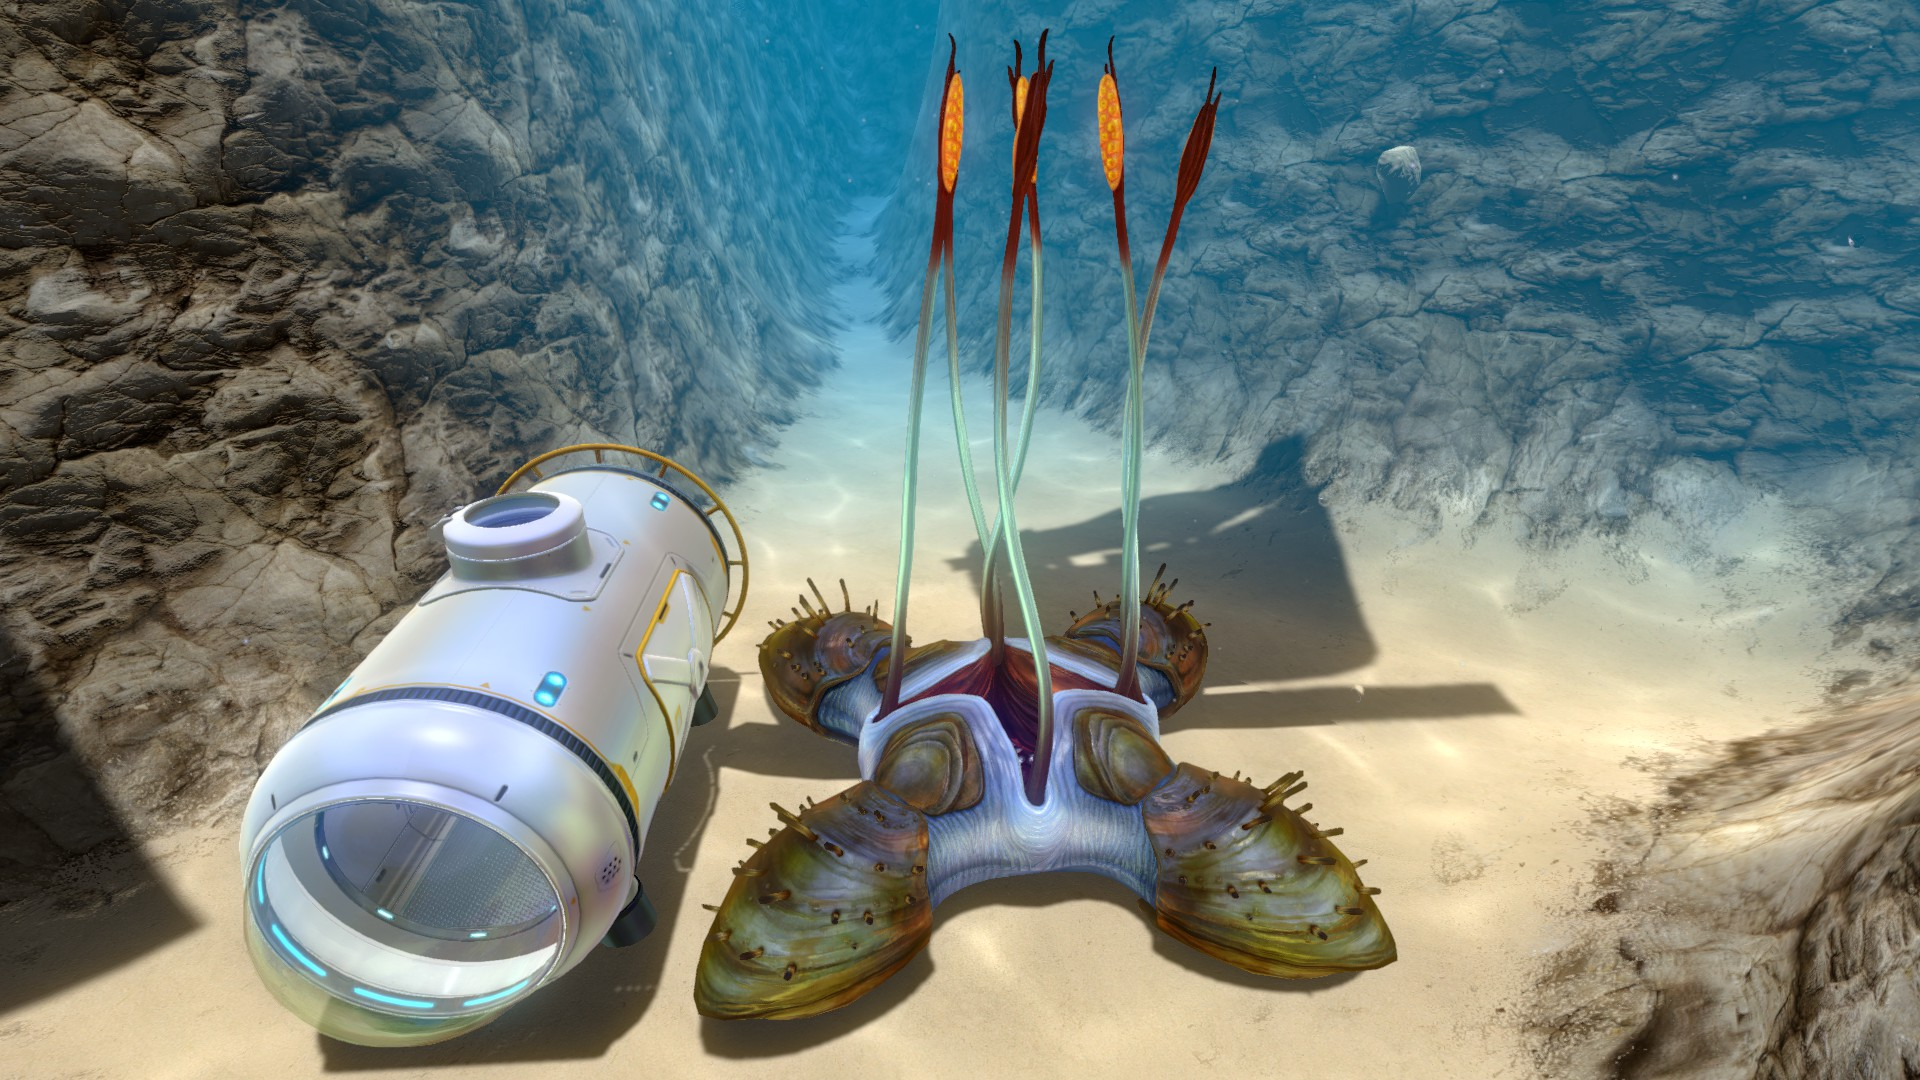 how do i use sample analyser in subnautica